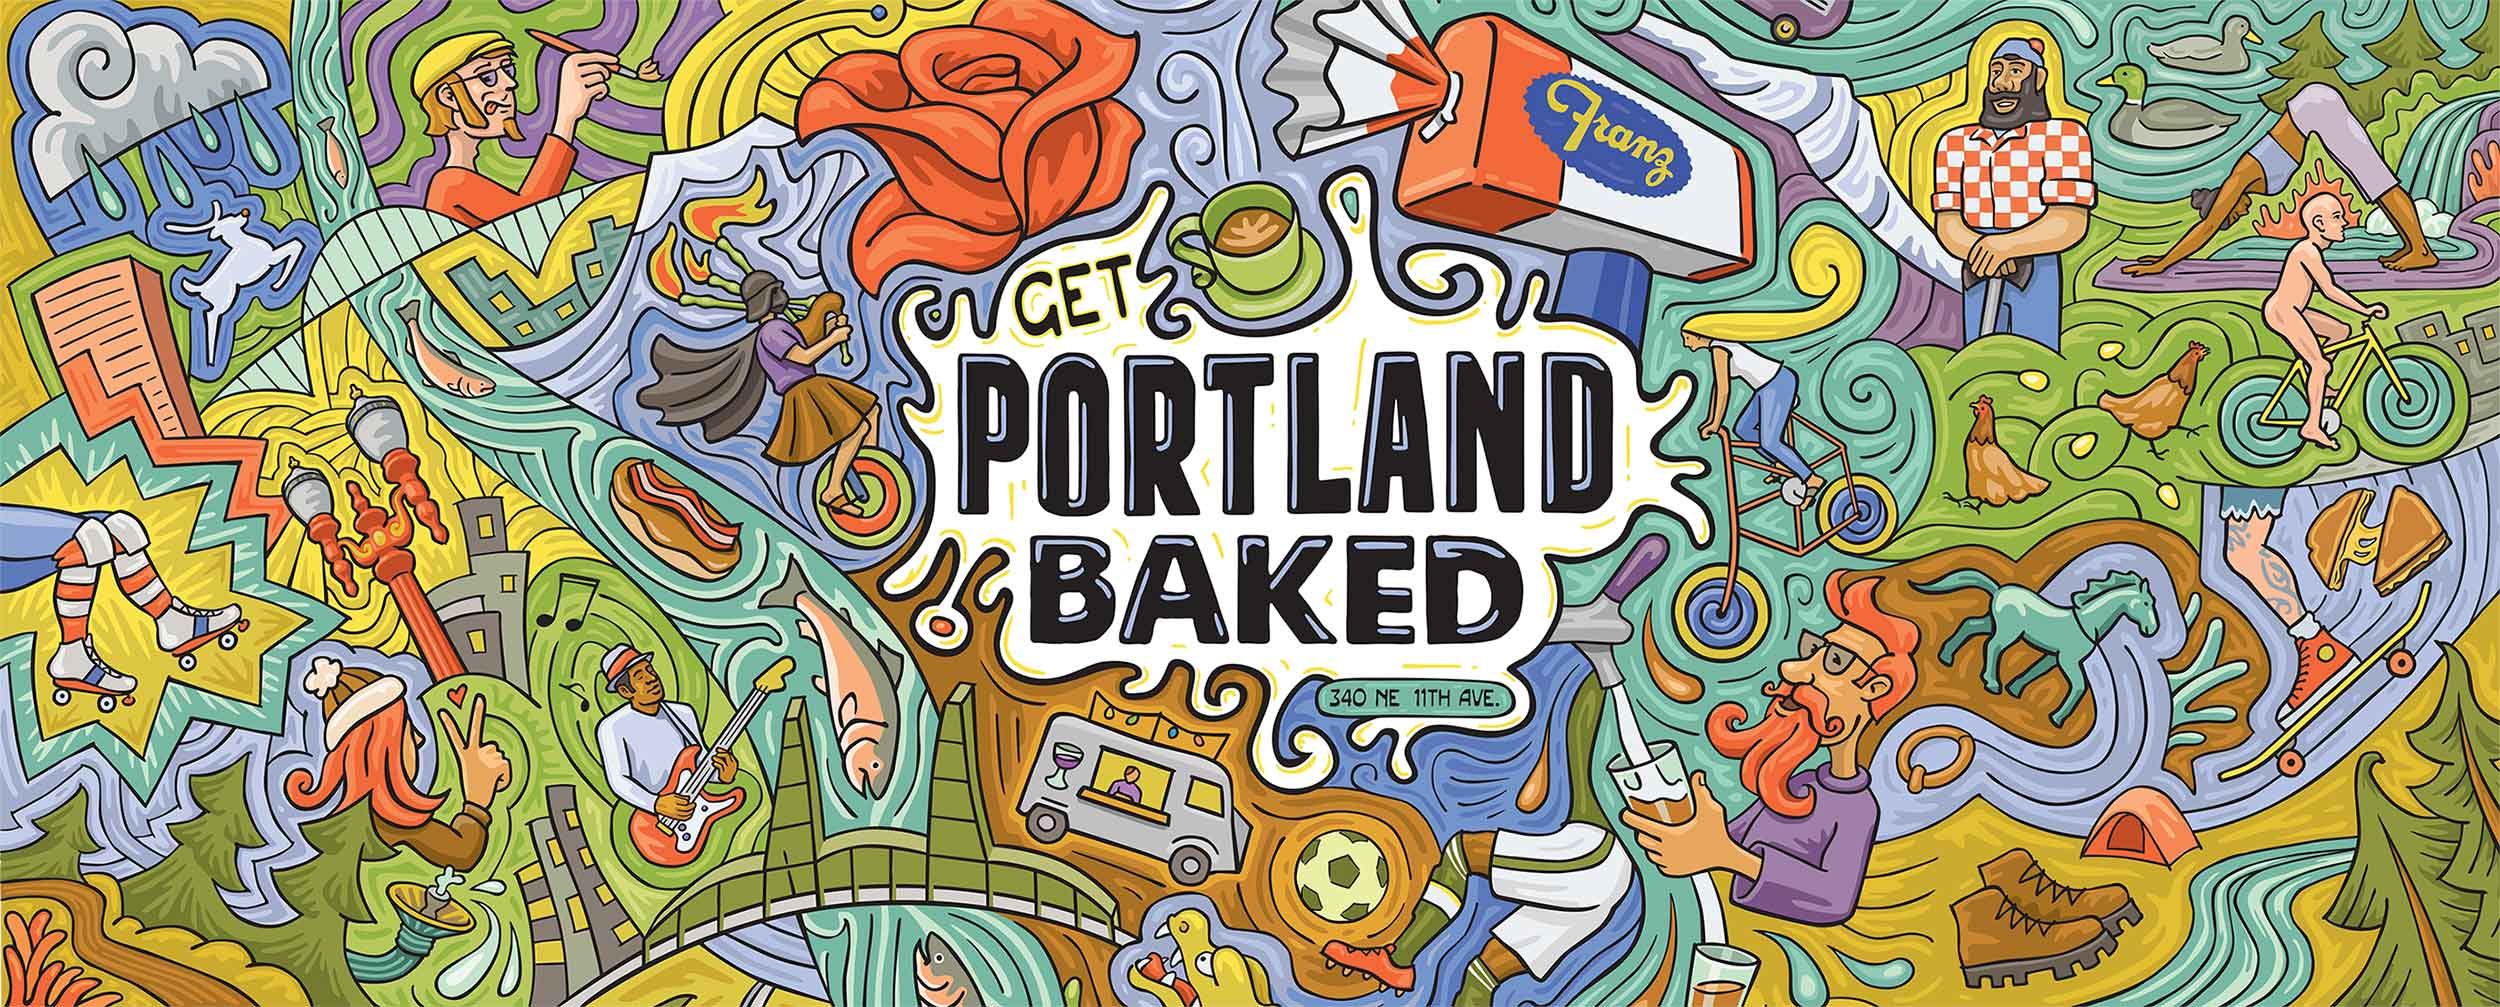 Franz Get Portland Baked Illustration